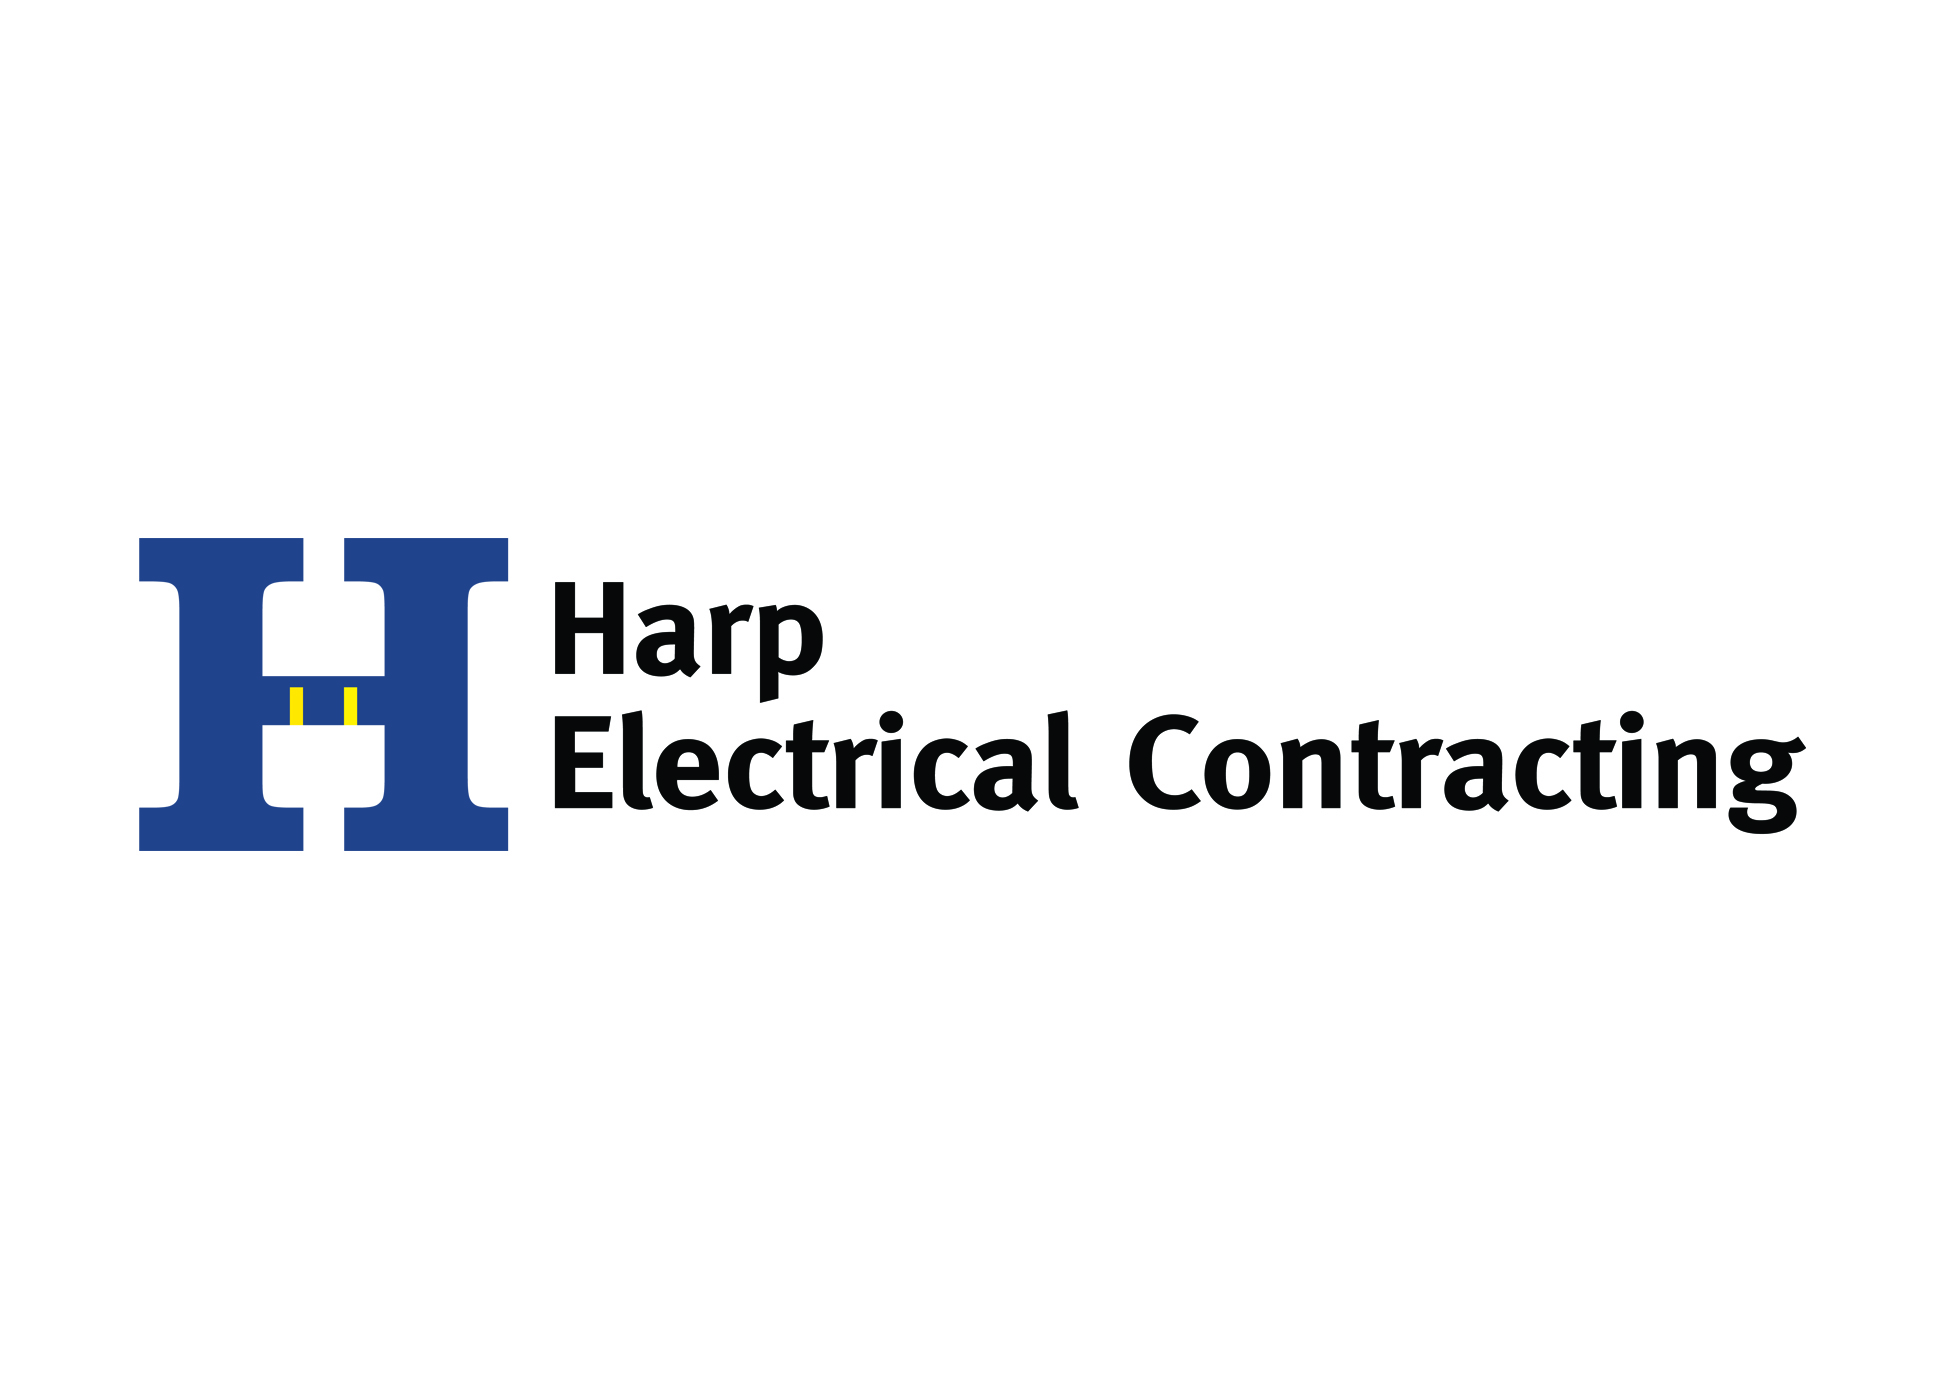 resized logos_0021_harp electrical.jpg